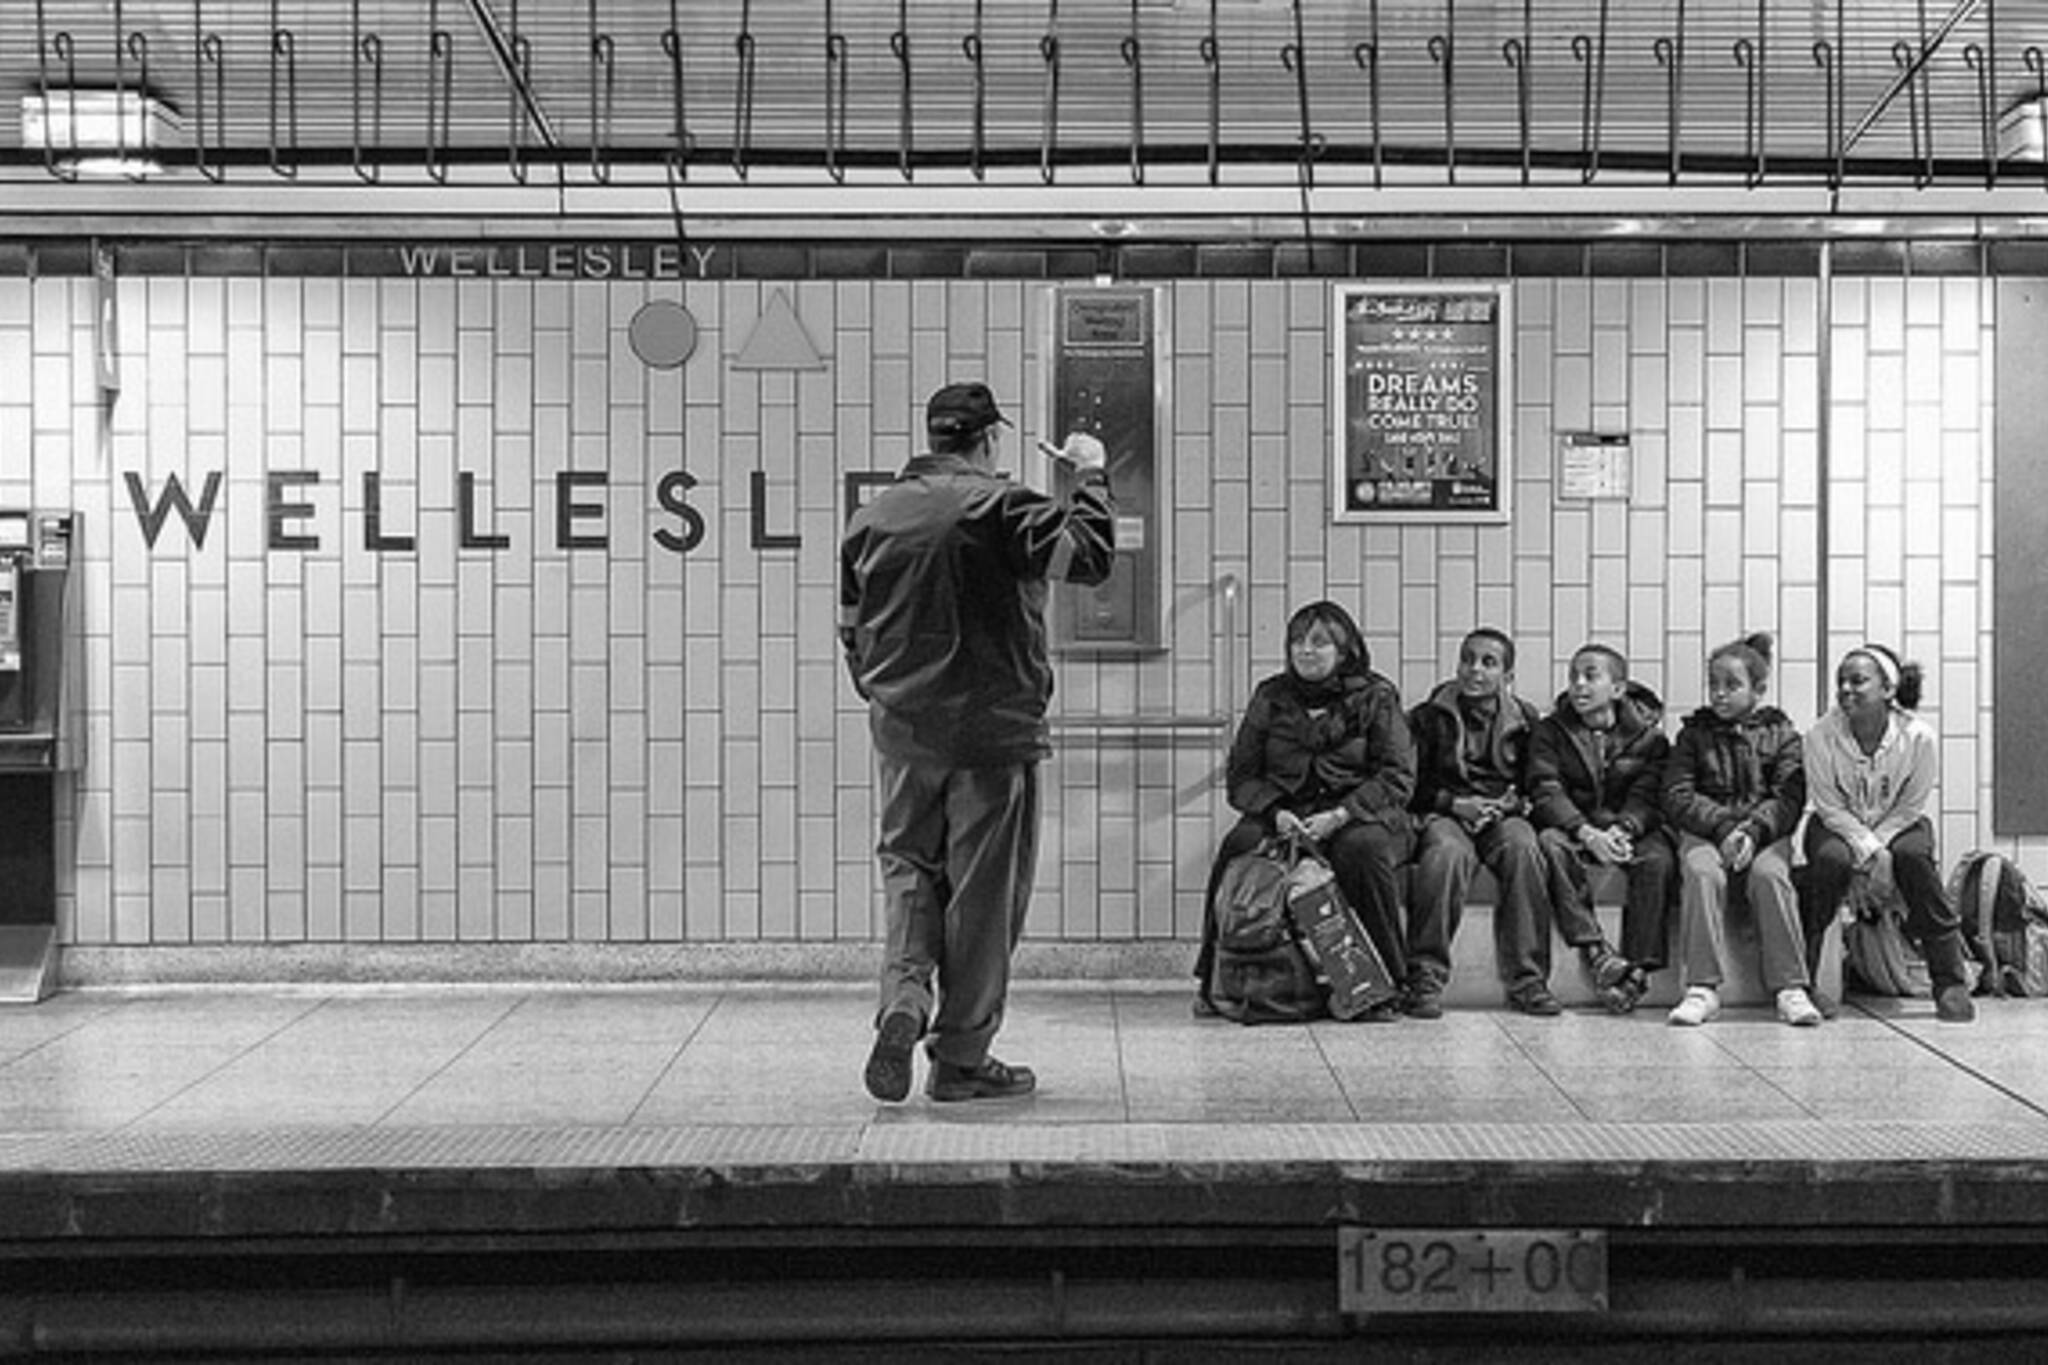 subway, wellesley, station